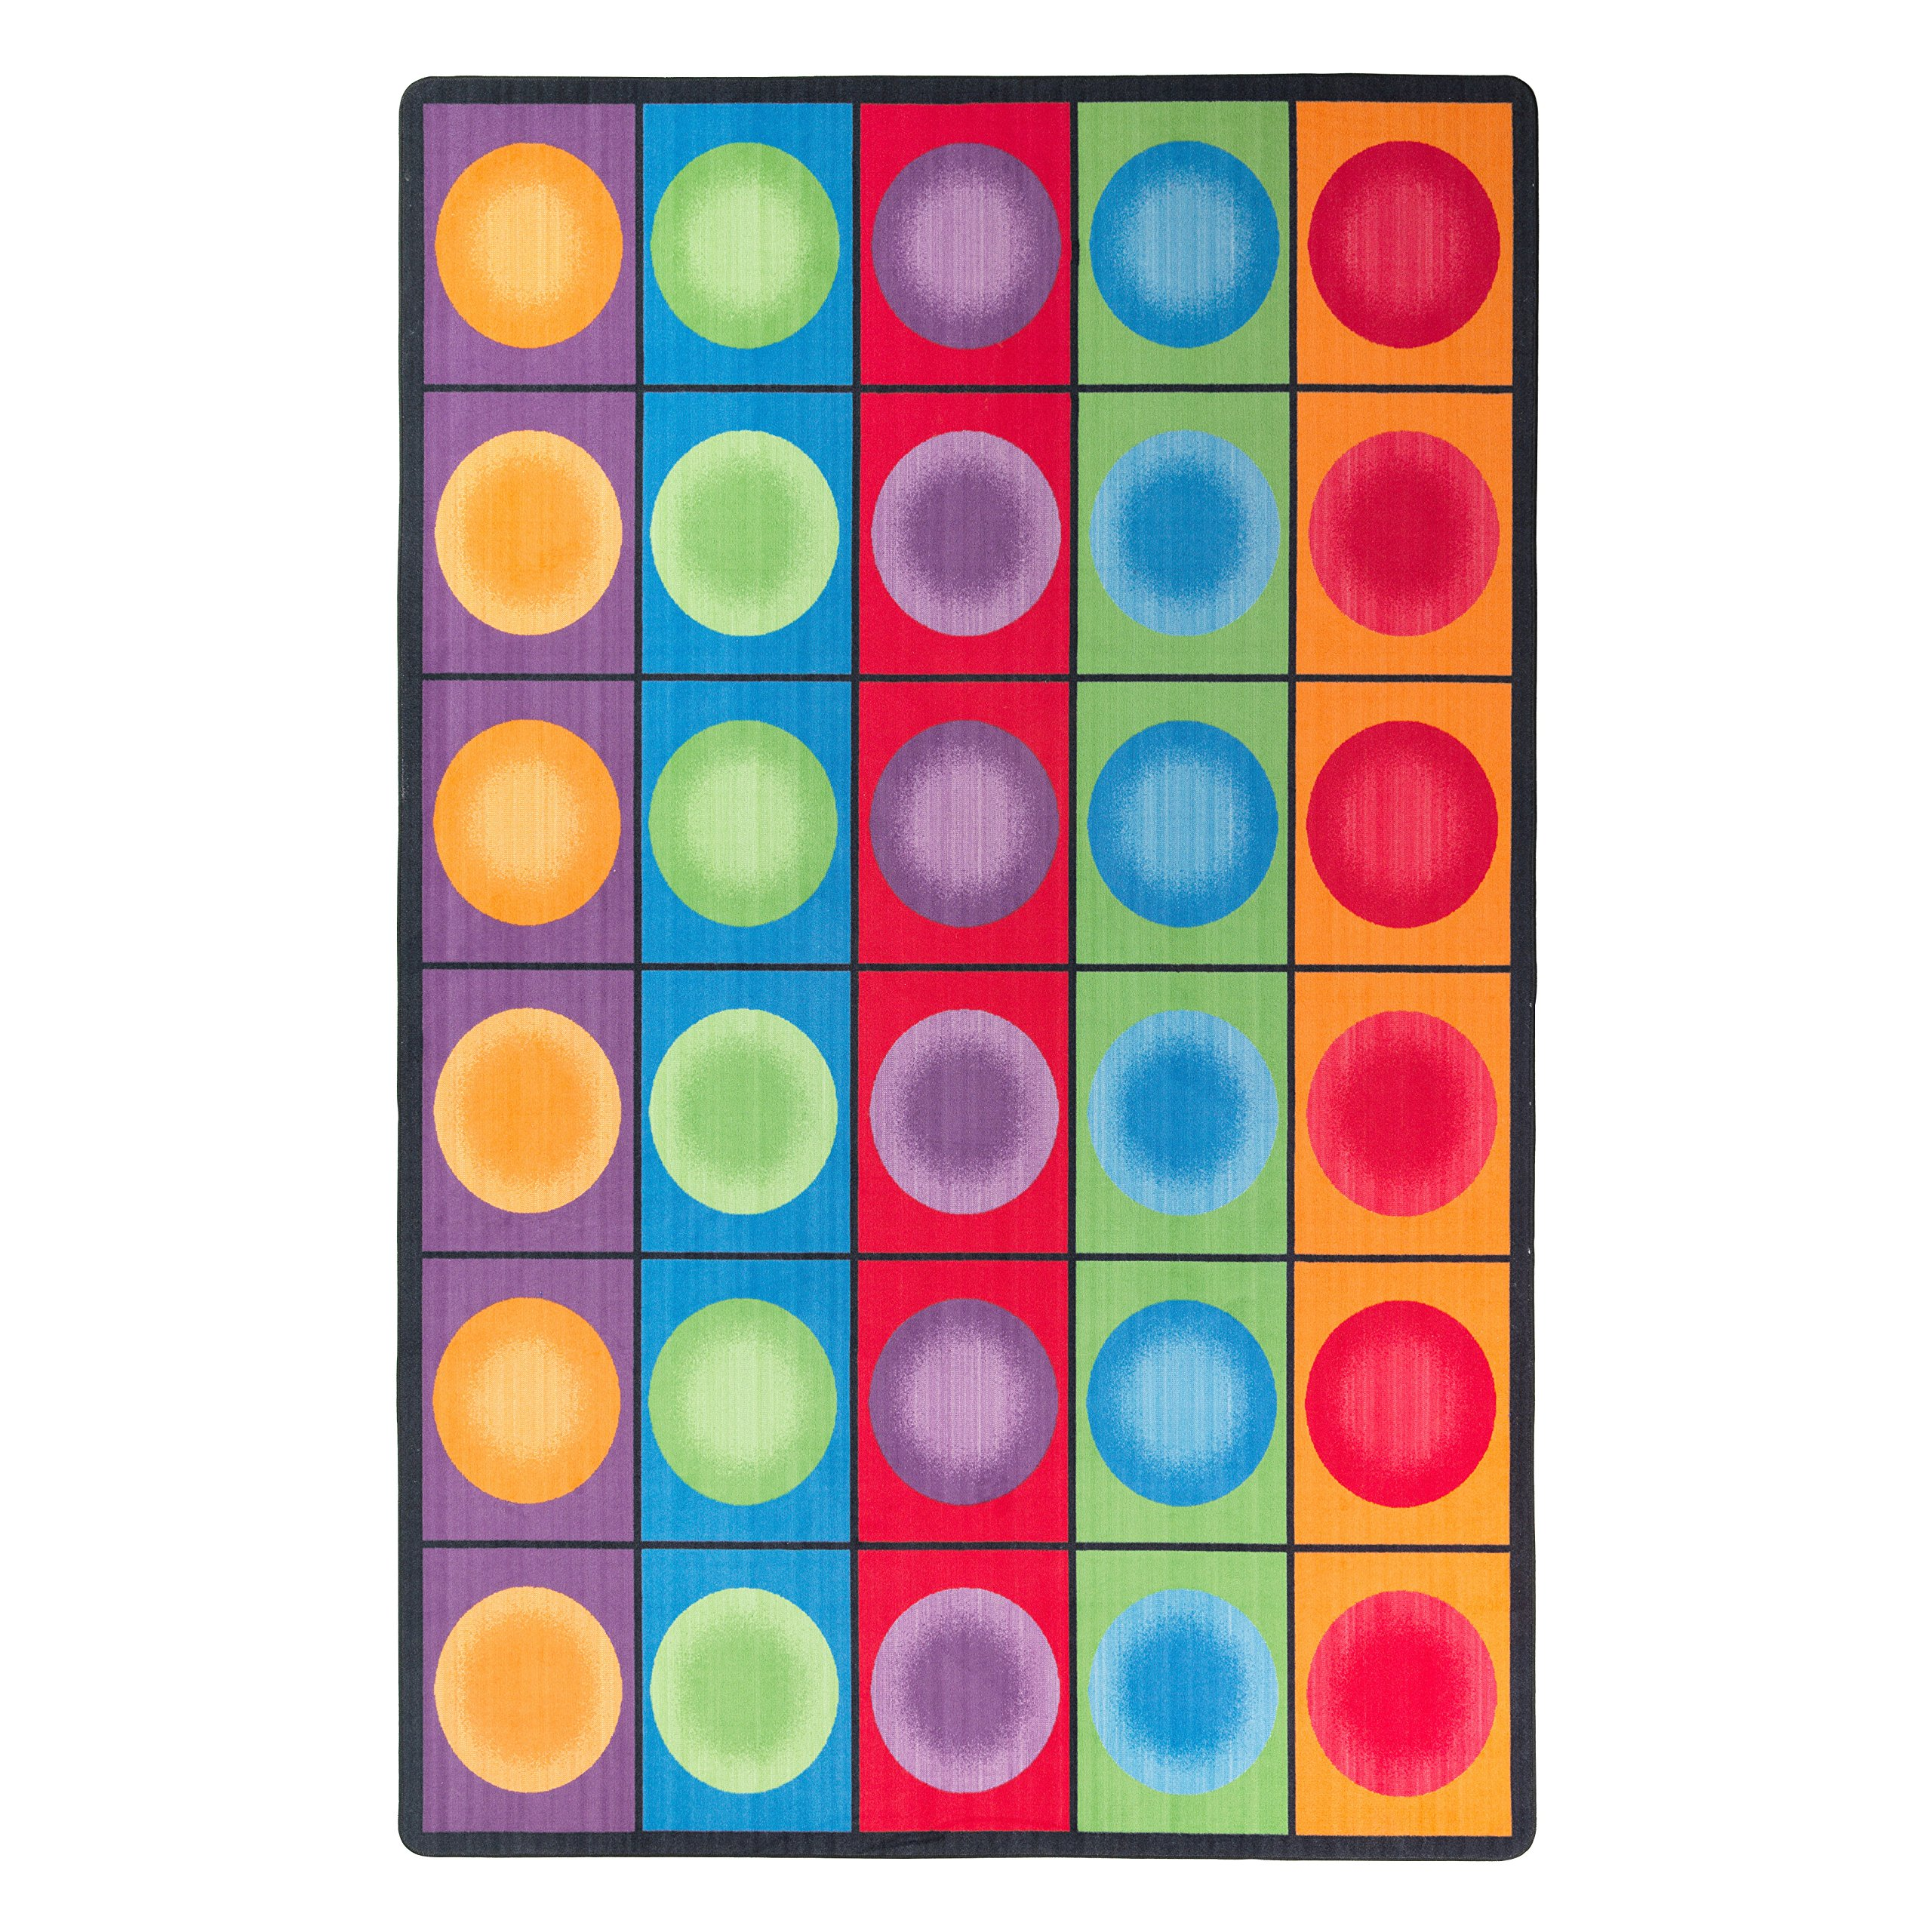 Flagship Carpets FE118-44A Dot Spots Seating Rug, Everyone Has a Spot on This Colorful Design, 7'6'' x 12' Seats 30, 90'' Length, 144'' Width, Multi-Color by Flagship Carpets